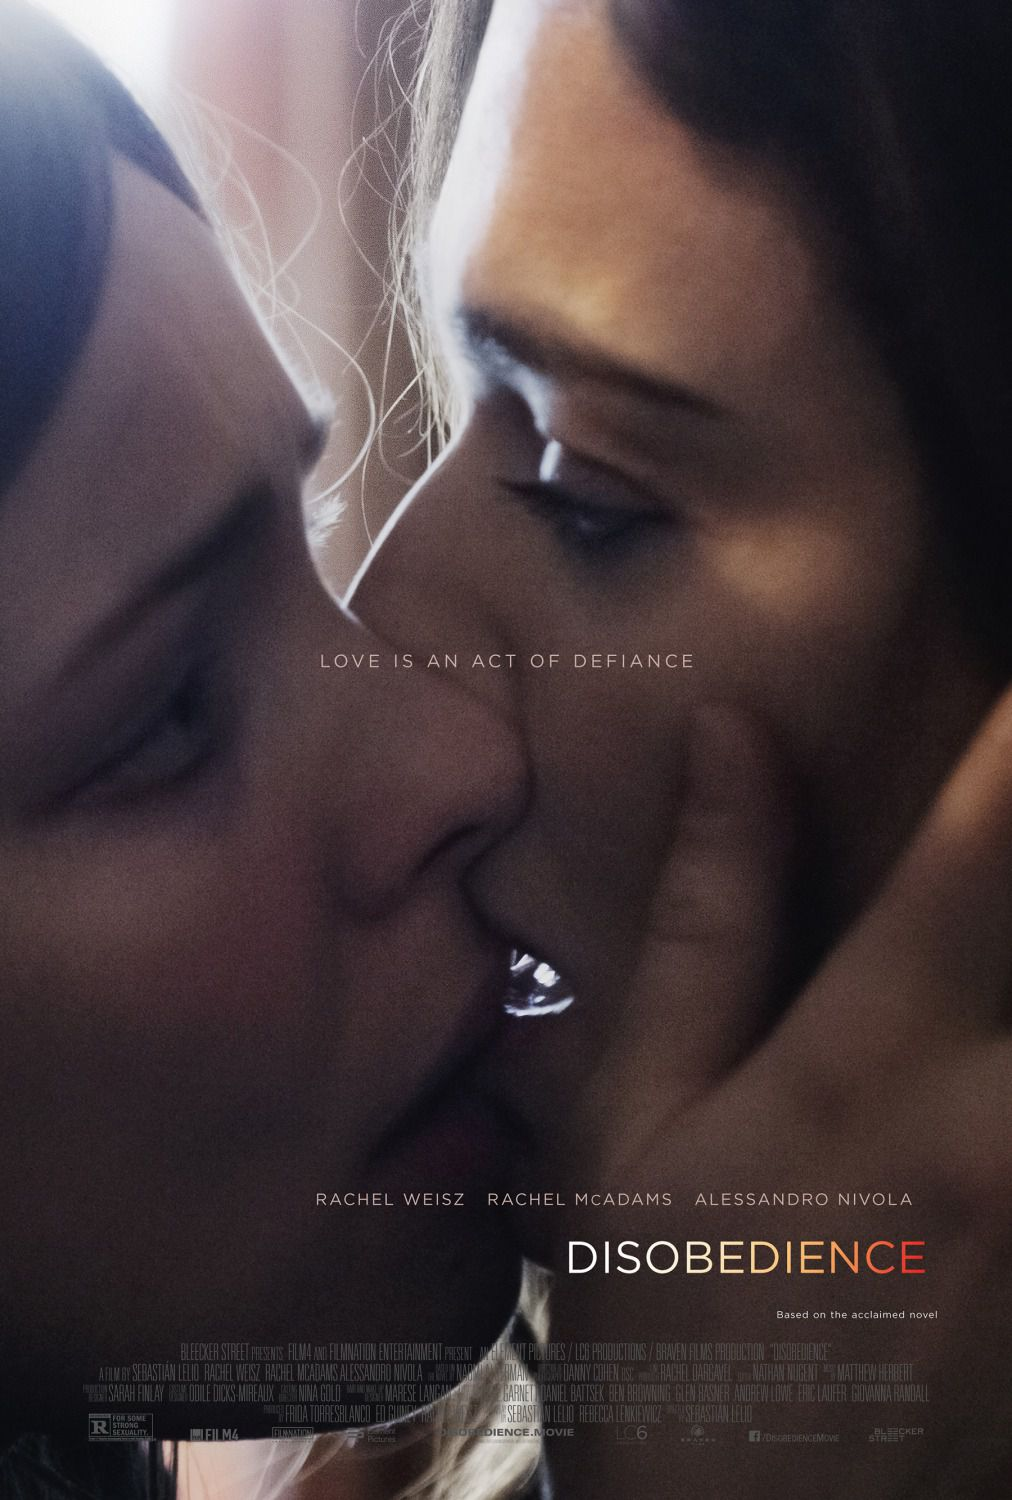 Disobedience (2018) - love drama poster